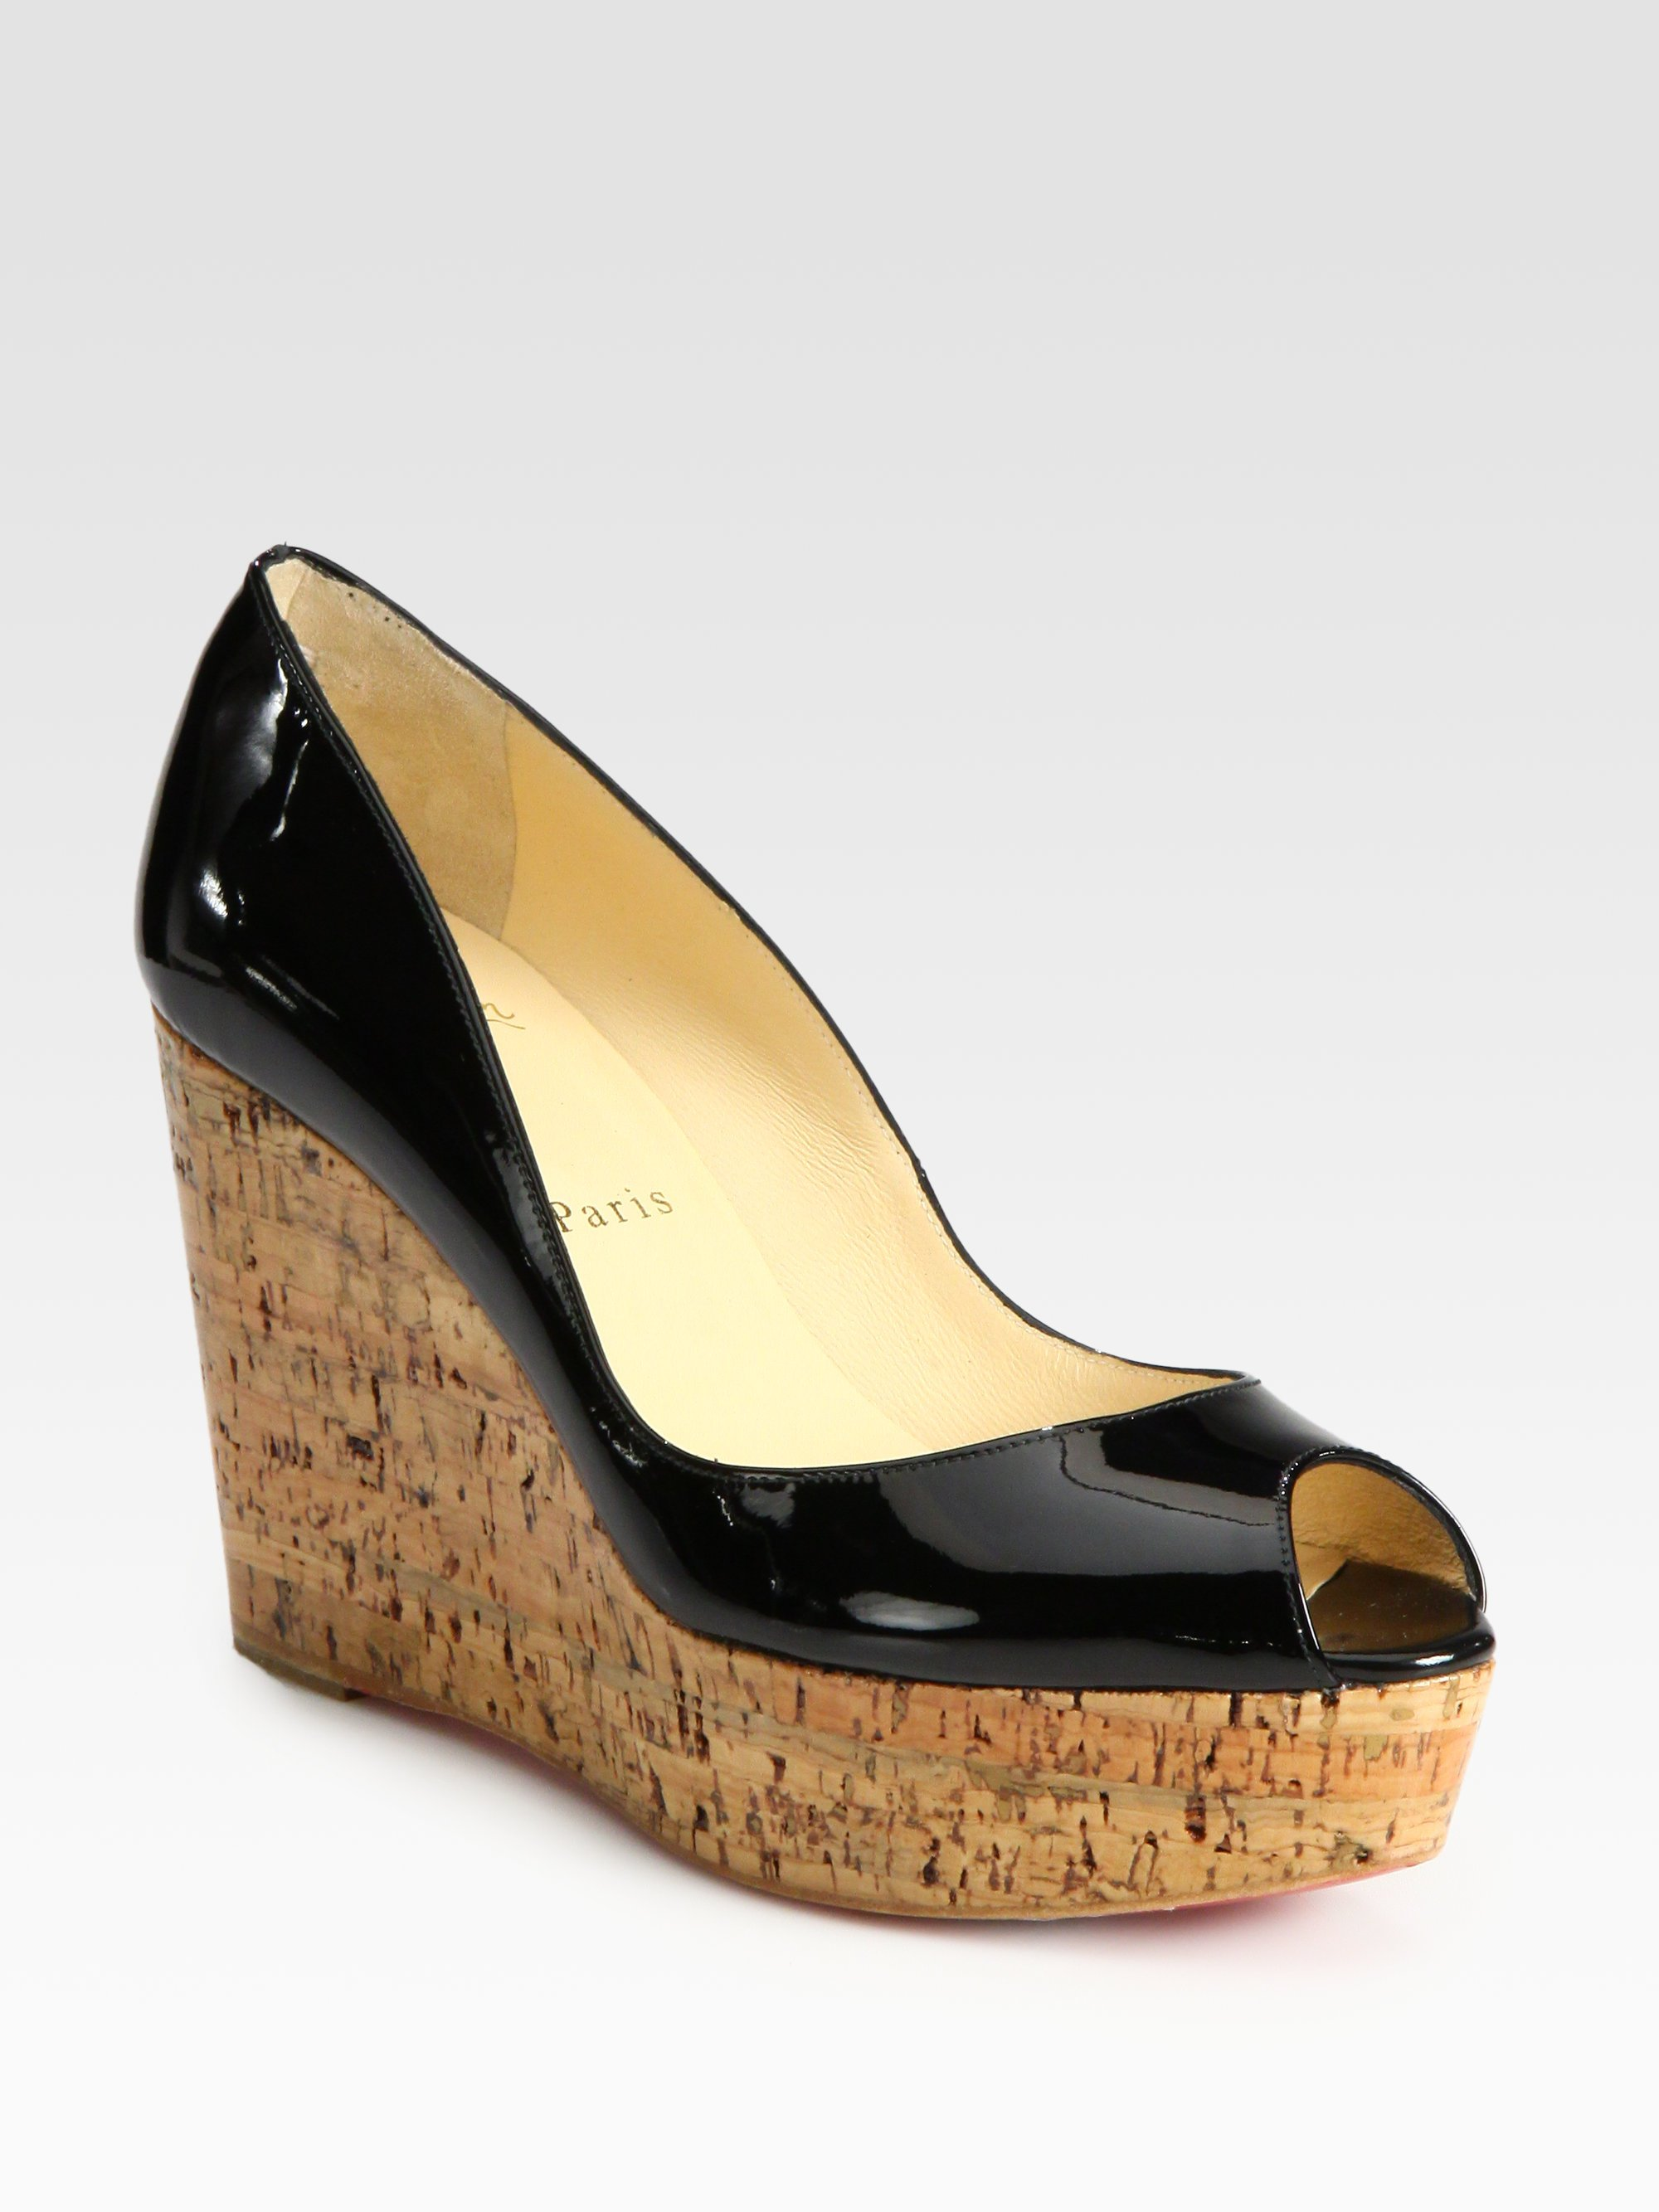 c8e503612dd8 get lyst christian louboutin patent leather cork wedge pumps in black 2e709  5bca1